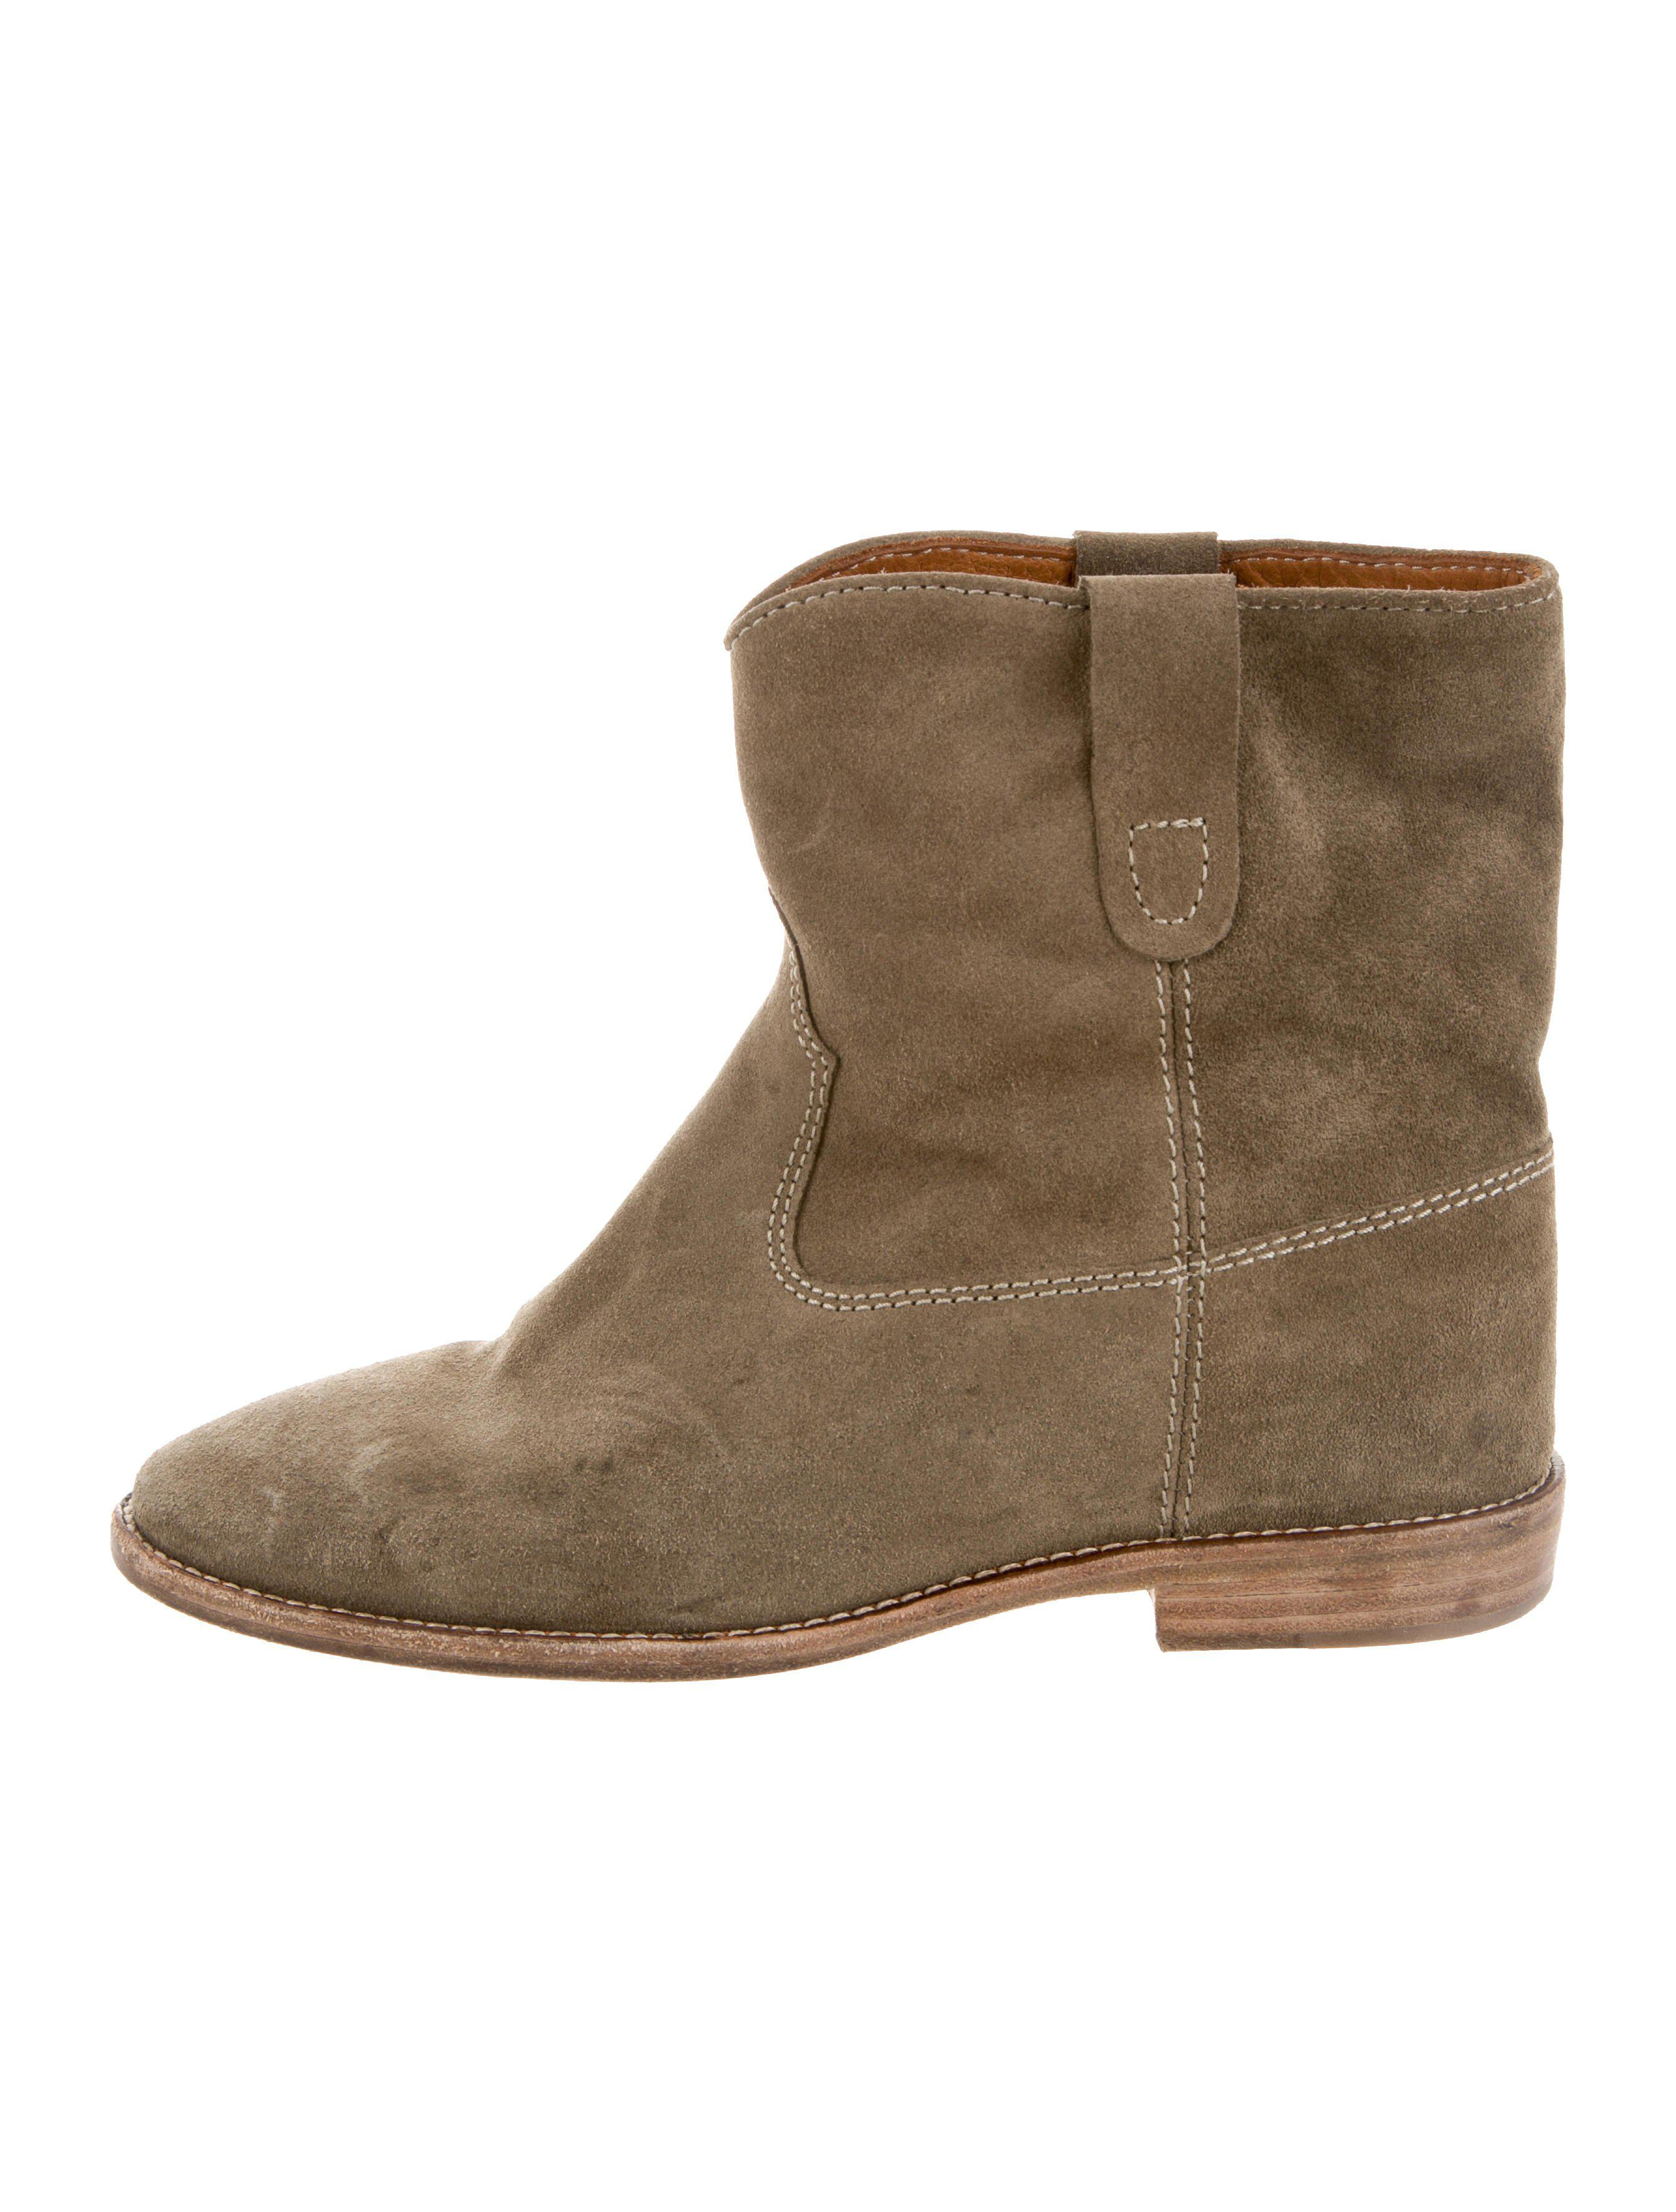 acfe500f2 Lyst - Étoile Isabel Marant Jenny Suede Boots Khaki in Natural